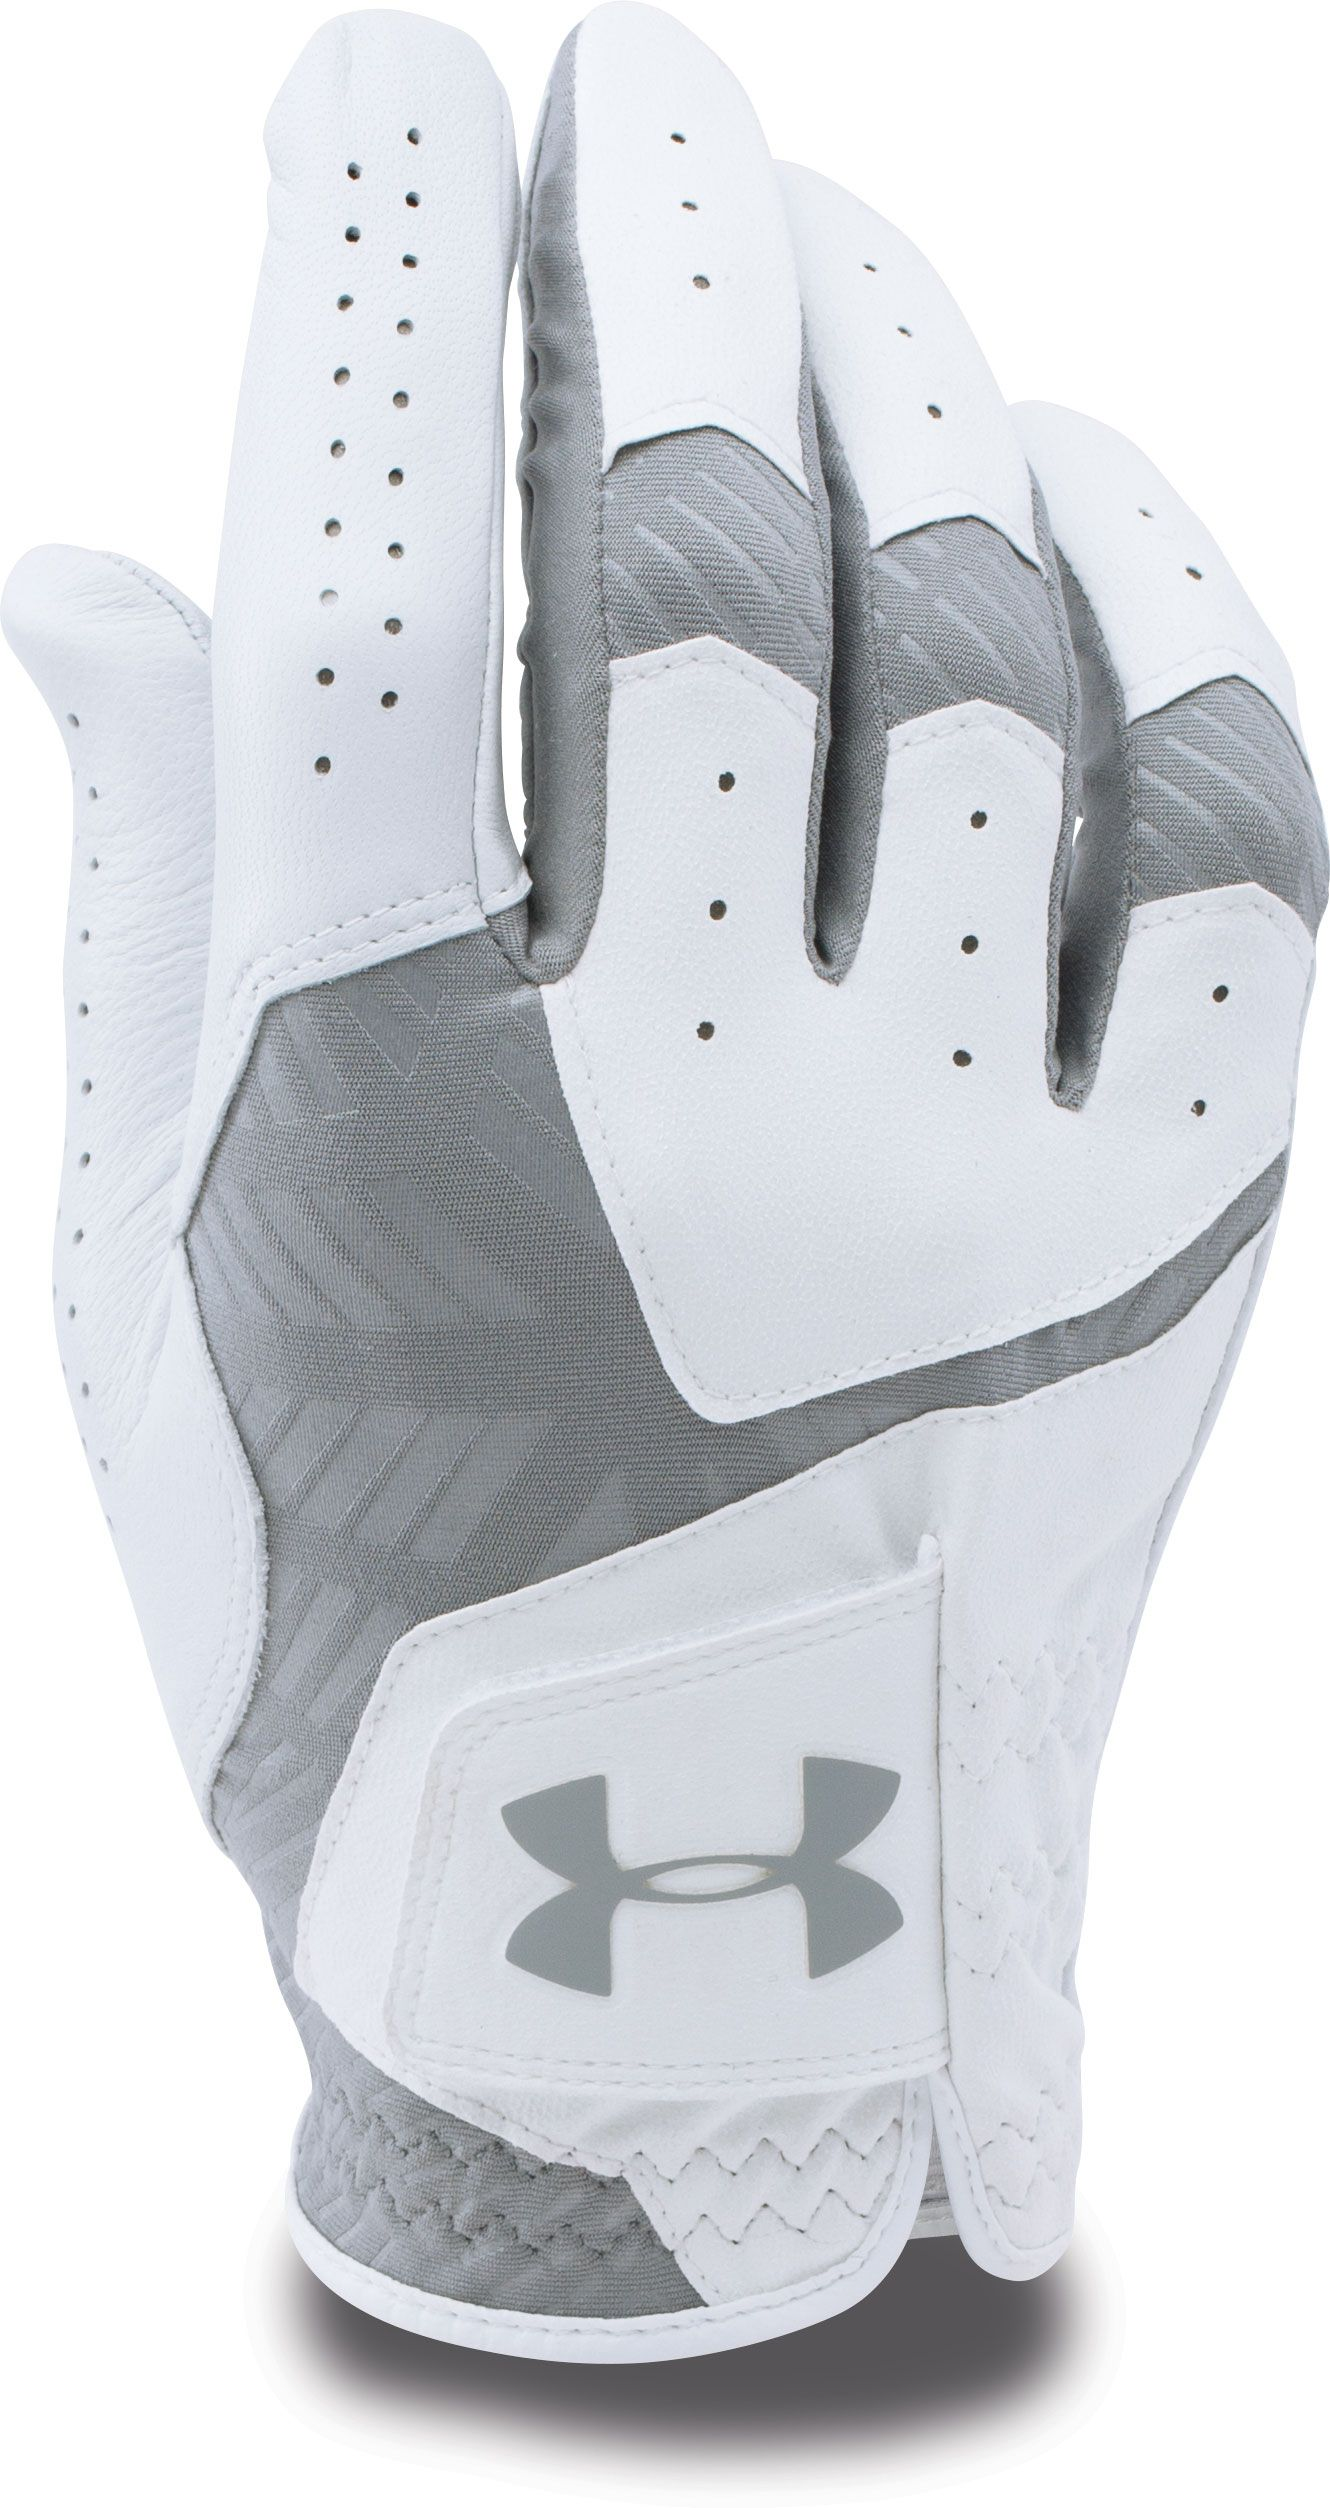 Under armour leather work gloves - Everything About The Under Armour Coolswitch Golf Glove Is Engineered To Make You Better Coolswitch